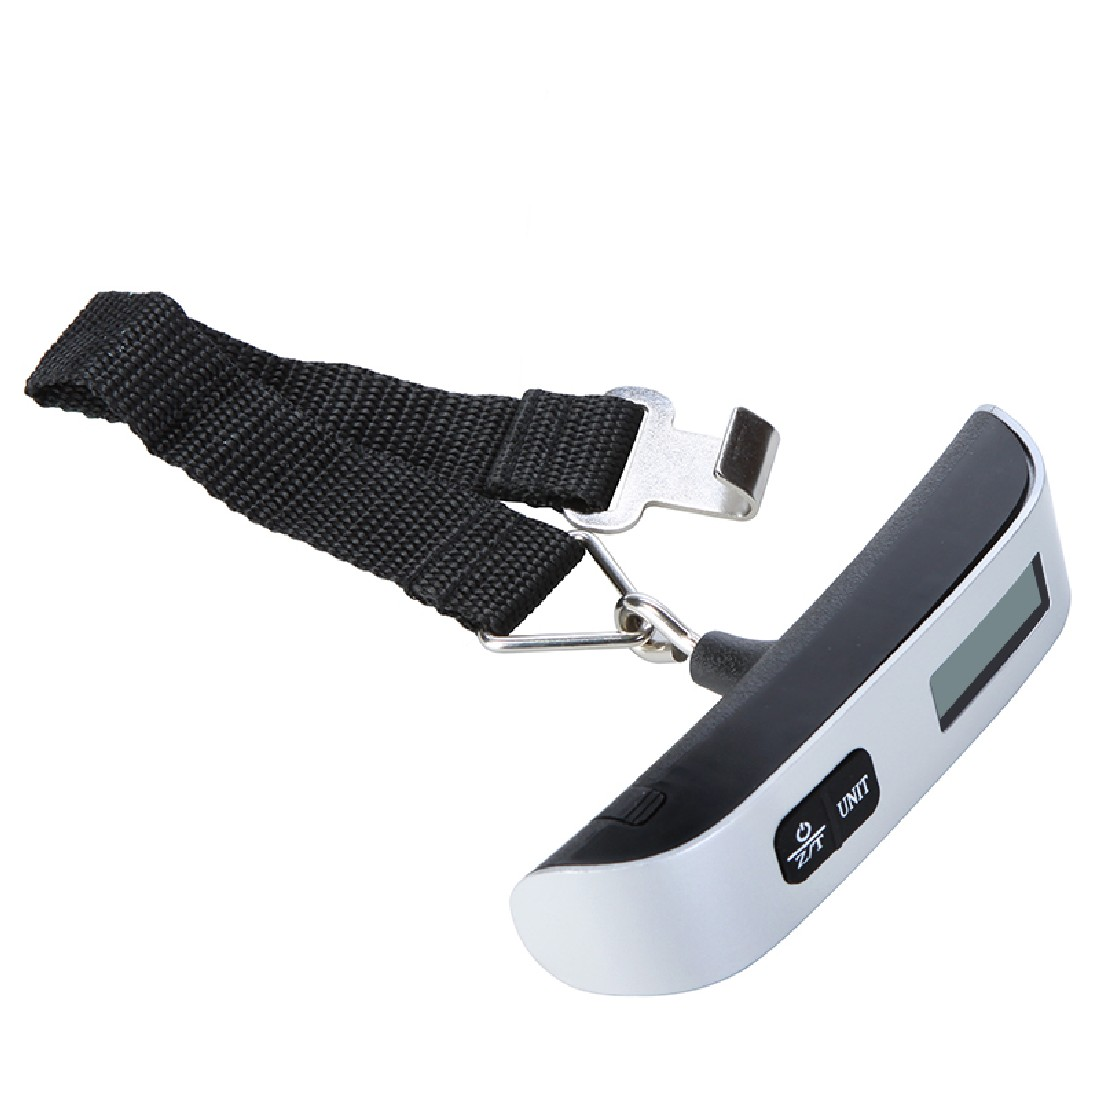 50kg/110lb Hook Belt Scale LCD Digital Electronic Scale For Travel Suitcase Luggage Hanging Scales Weighing Hand Held